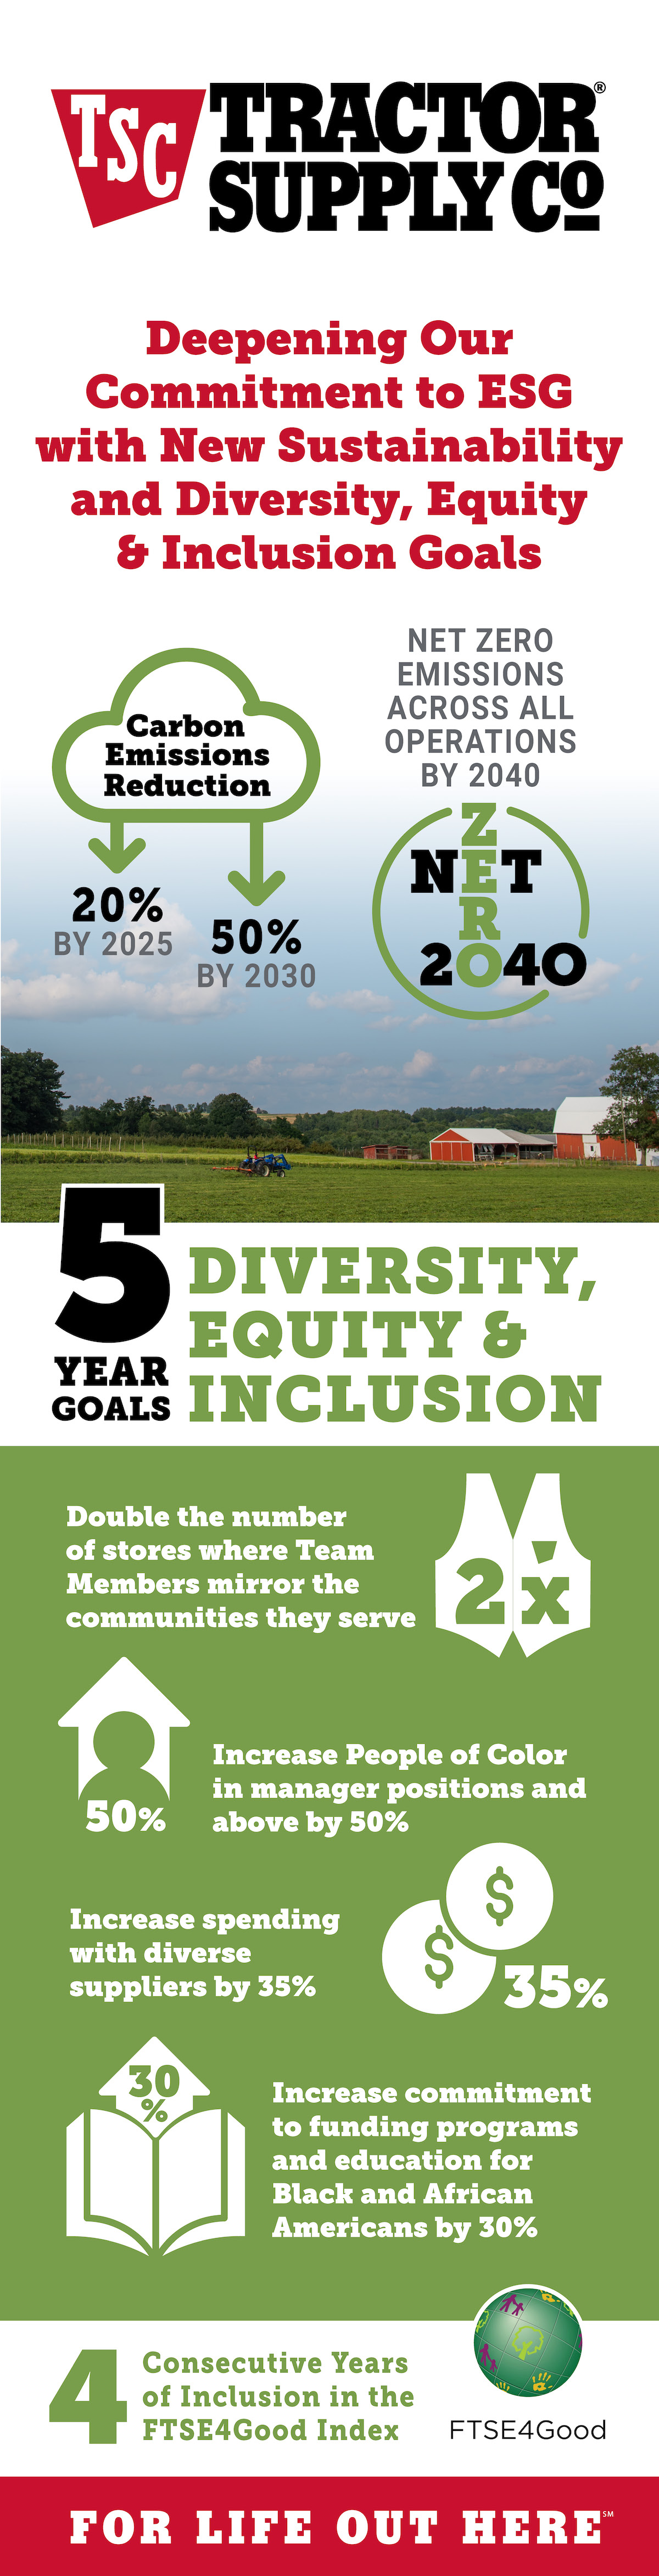 Tractor Supply Co Diversity, Equity & Inclusion poster